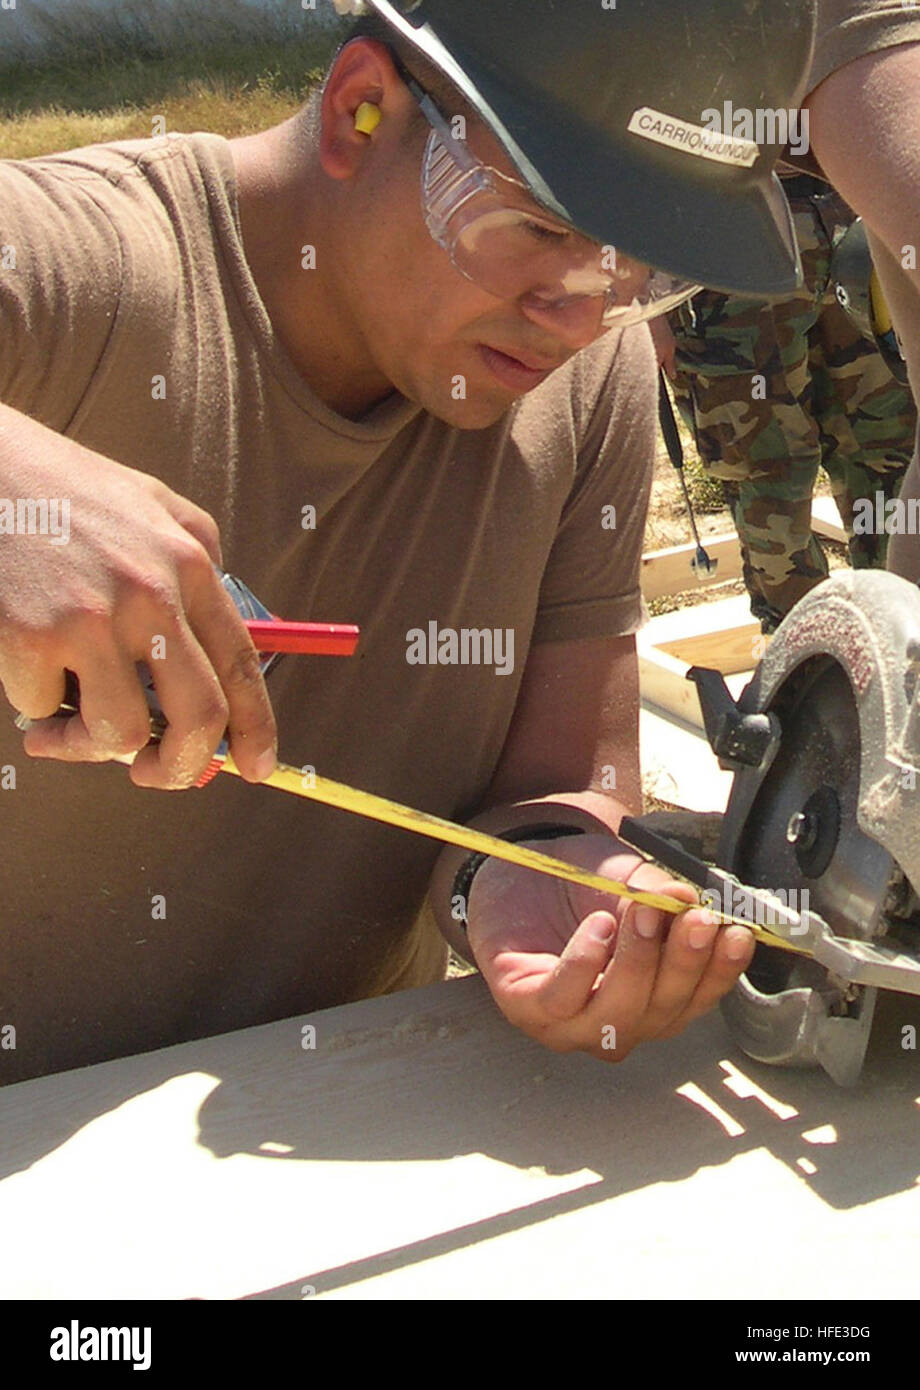 040818-N-1594R-002 Rota, Spain (Aug. 18, 2004) Ð Builder Constructionman Luis Carrionjunqui, assigned to Naval - Stock Image